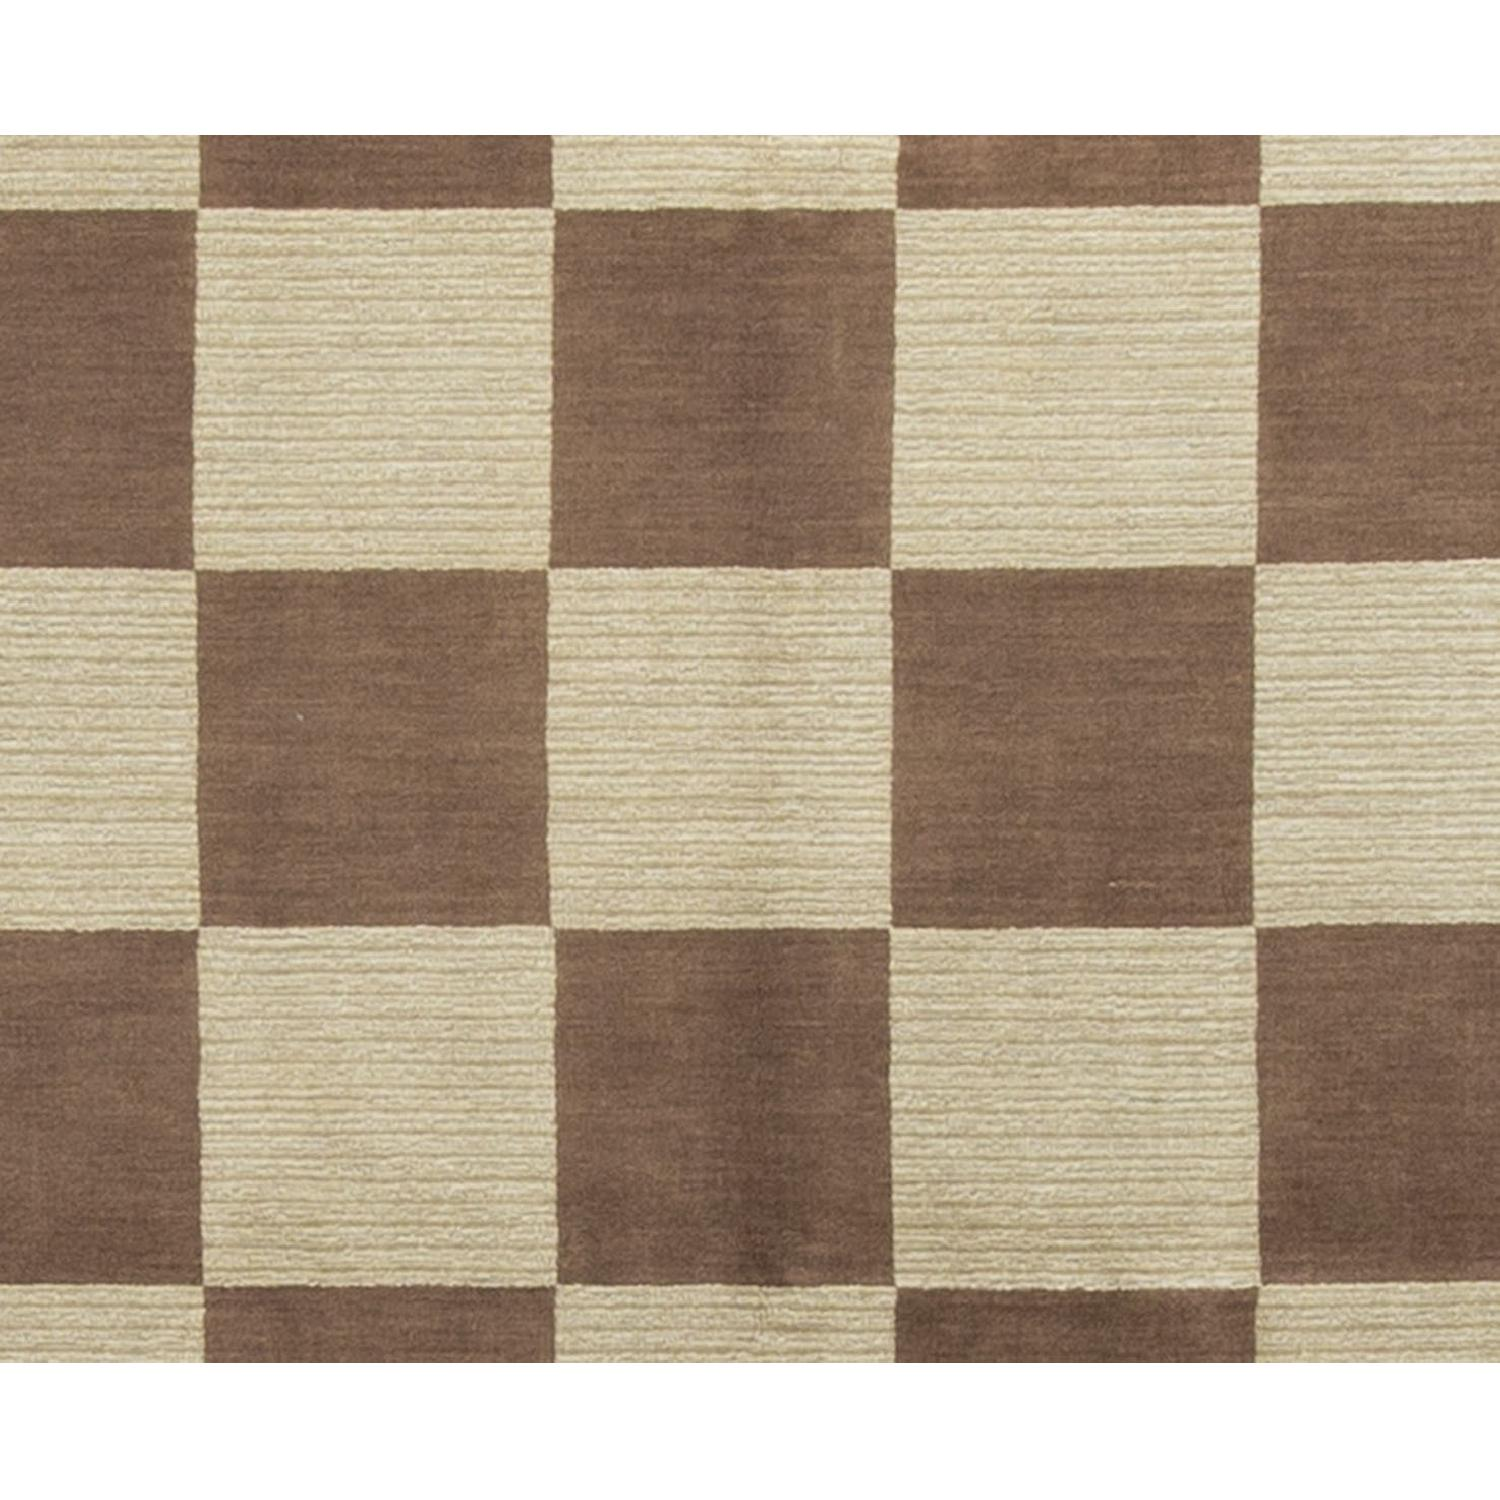 Modern Contemporary Hand Knotted Wool Rug in Brown/Multi - image-2